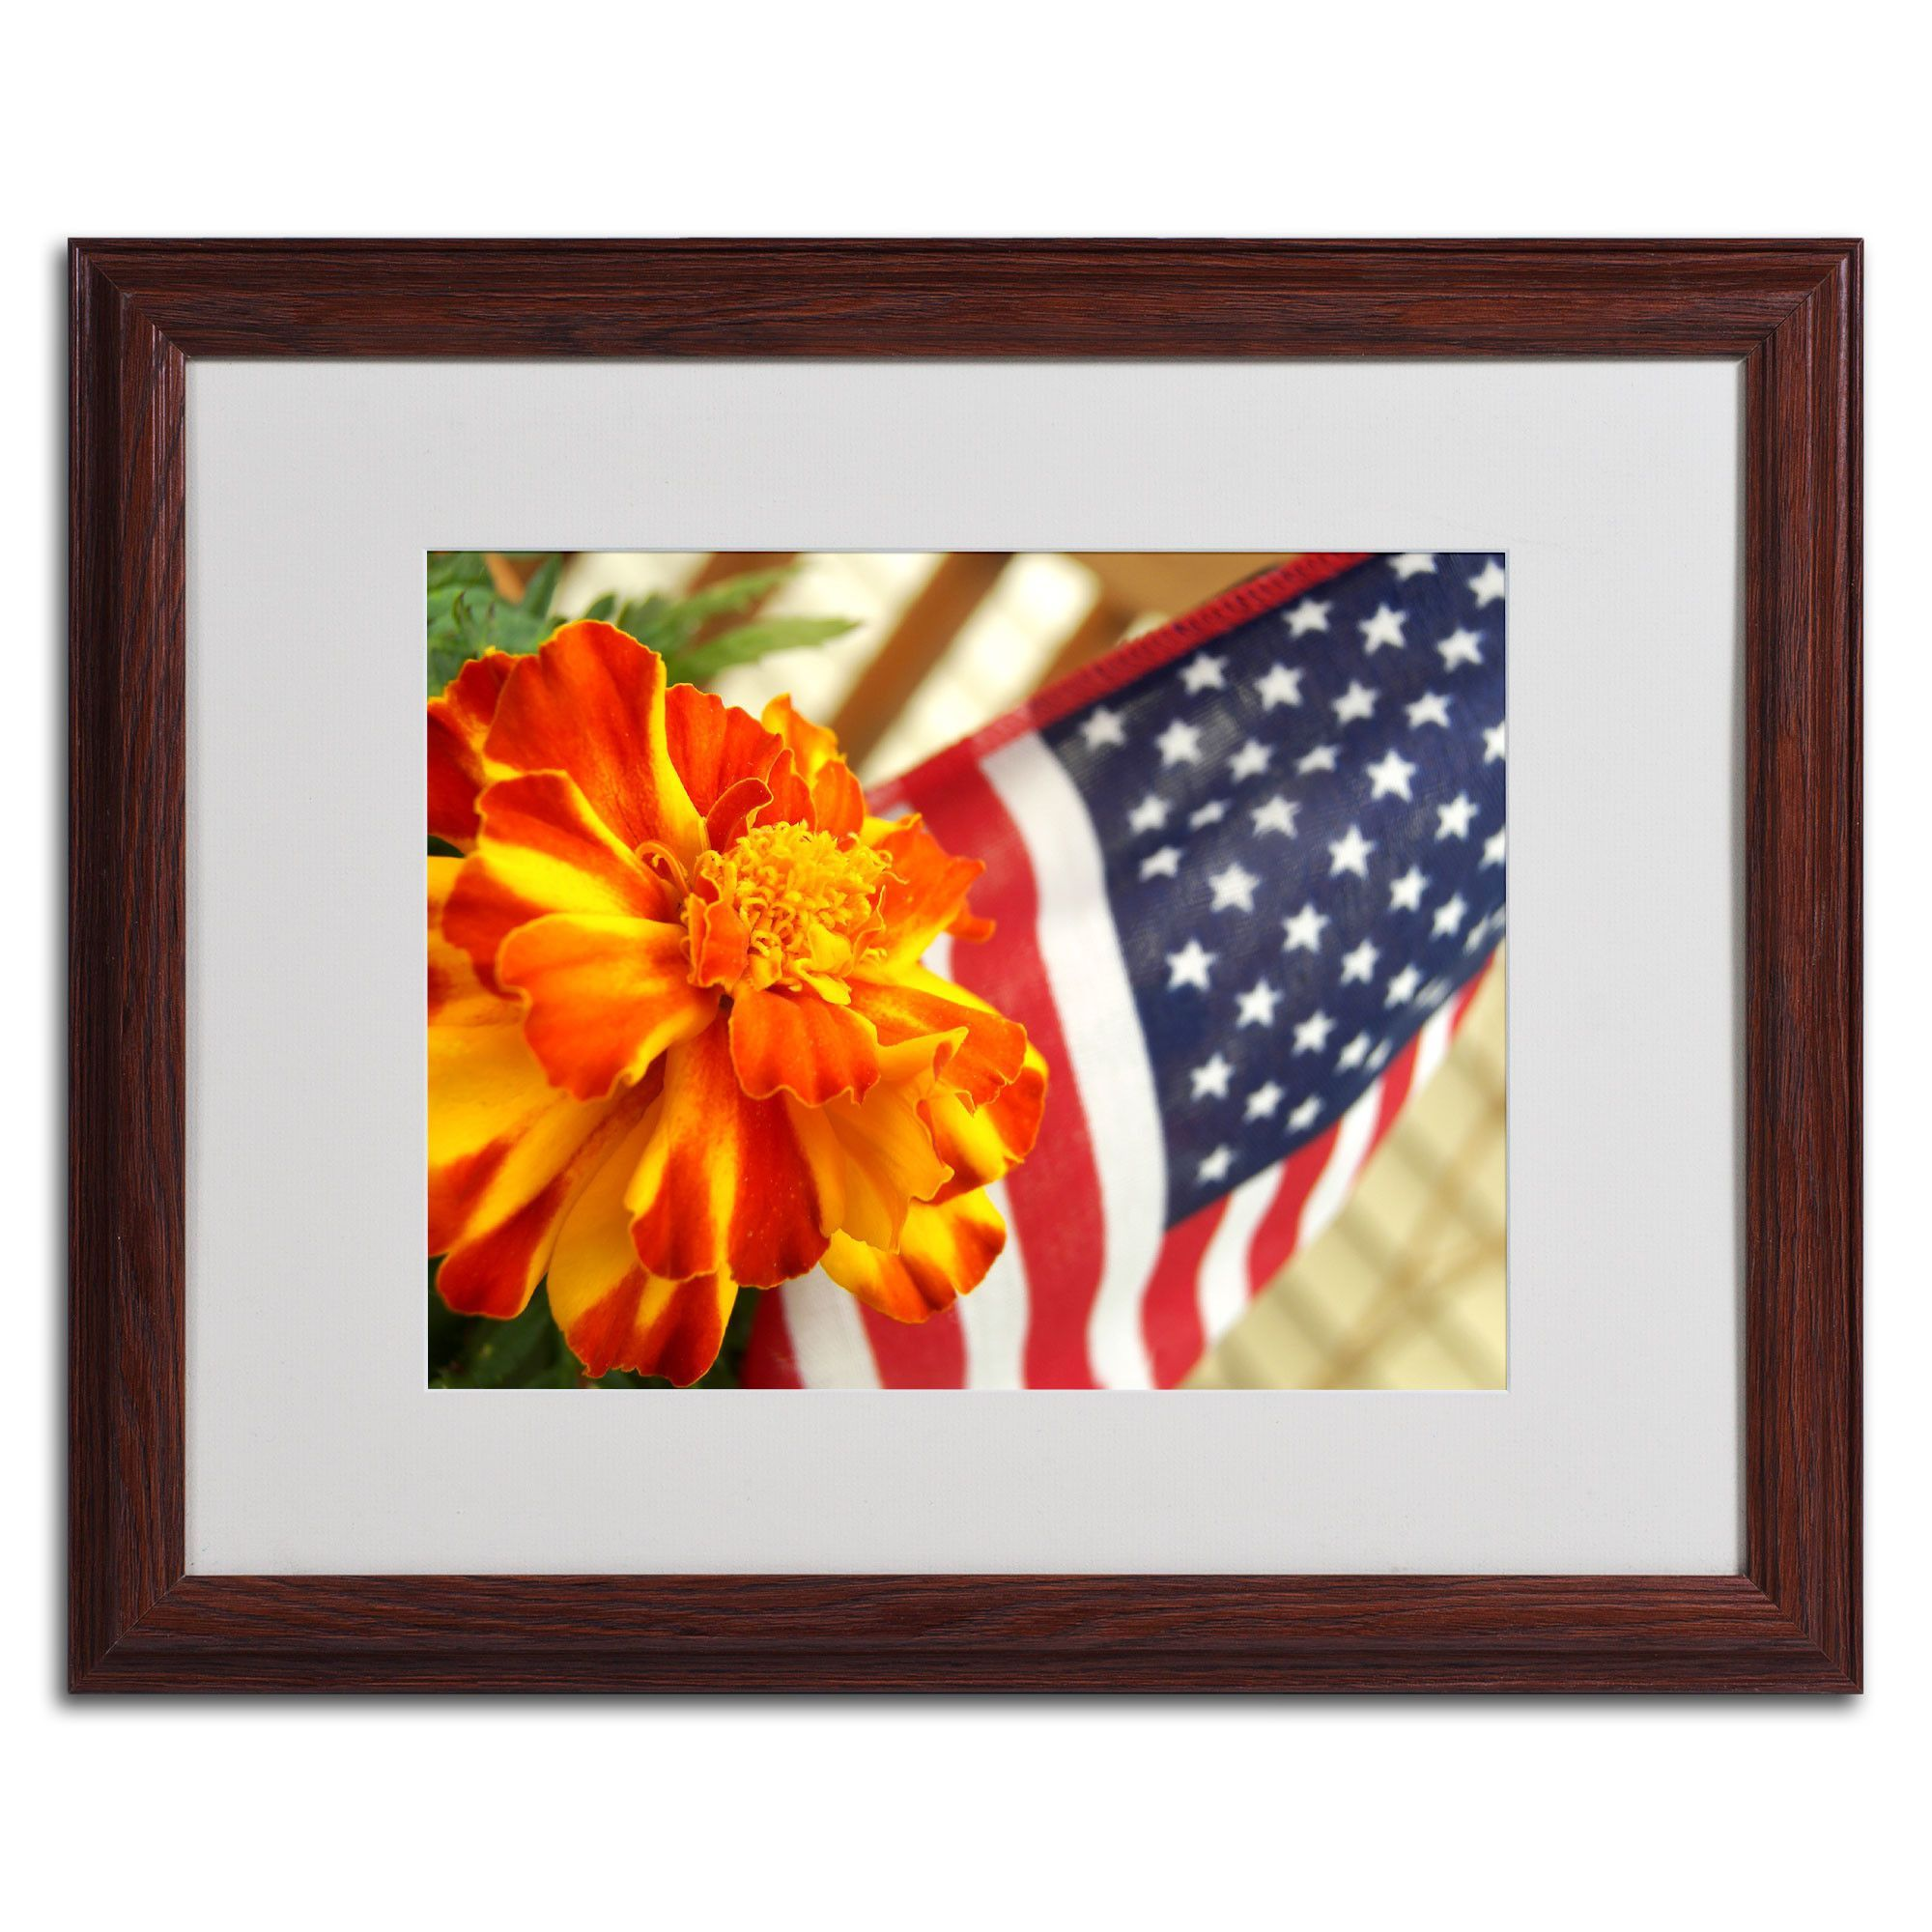 'Grace in Honor' by Monica Fleet Framed Photographic Print